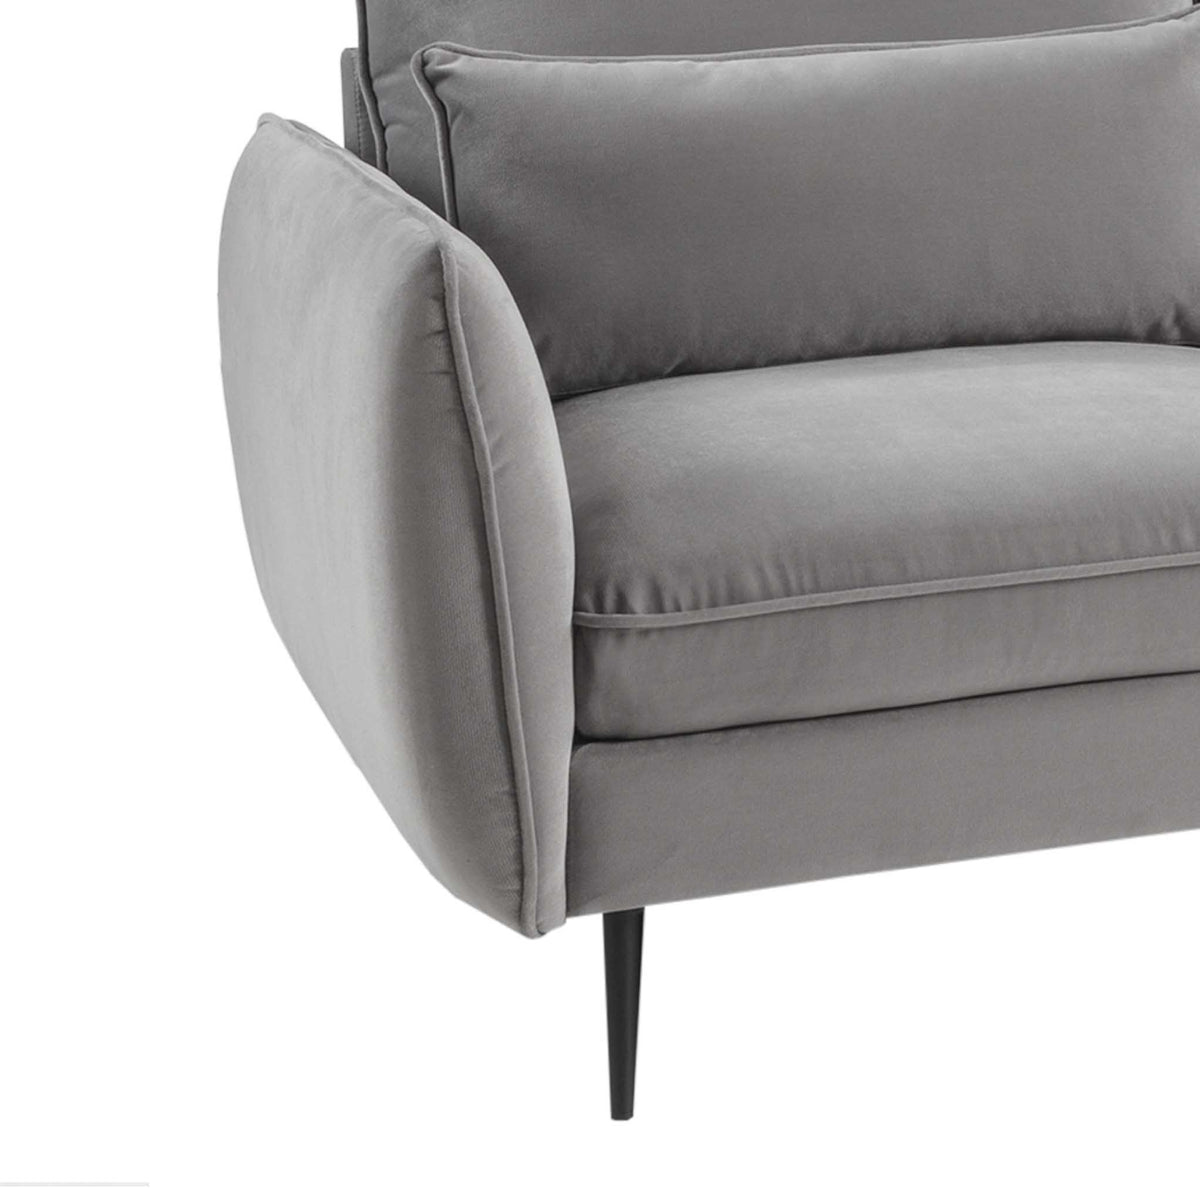 close up of the cushioned armrests on the Rhonda Grey Velvet 3 Seater Sofa